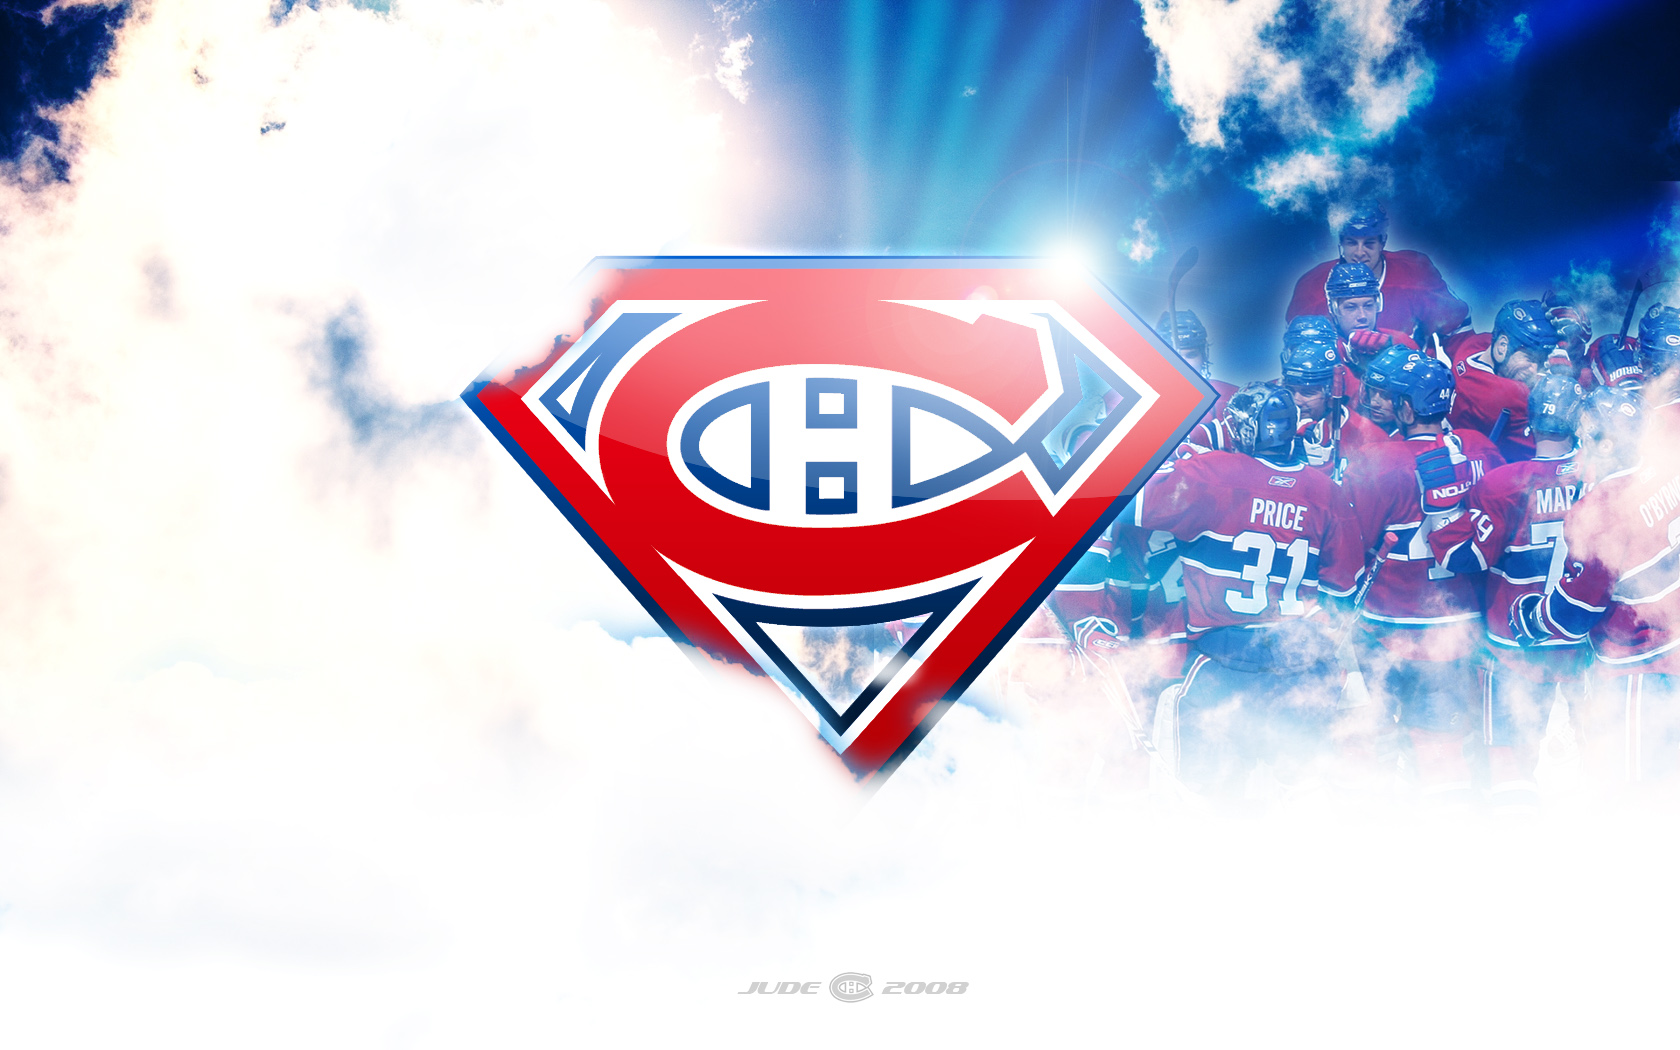 Montreal Canadiens Wallpaper For Ipad Posted By Ryan Johnson